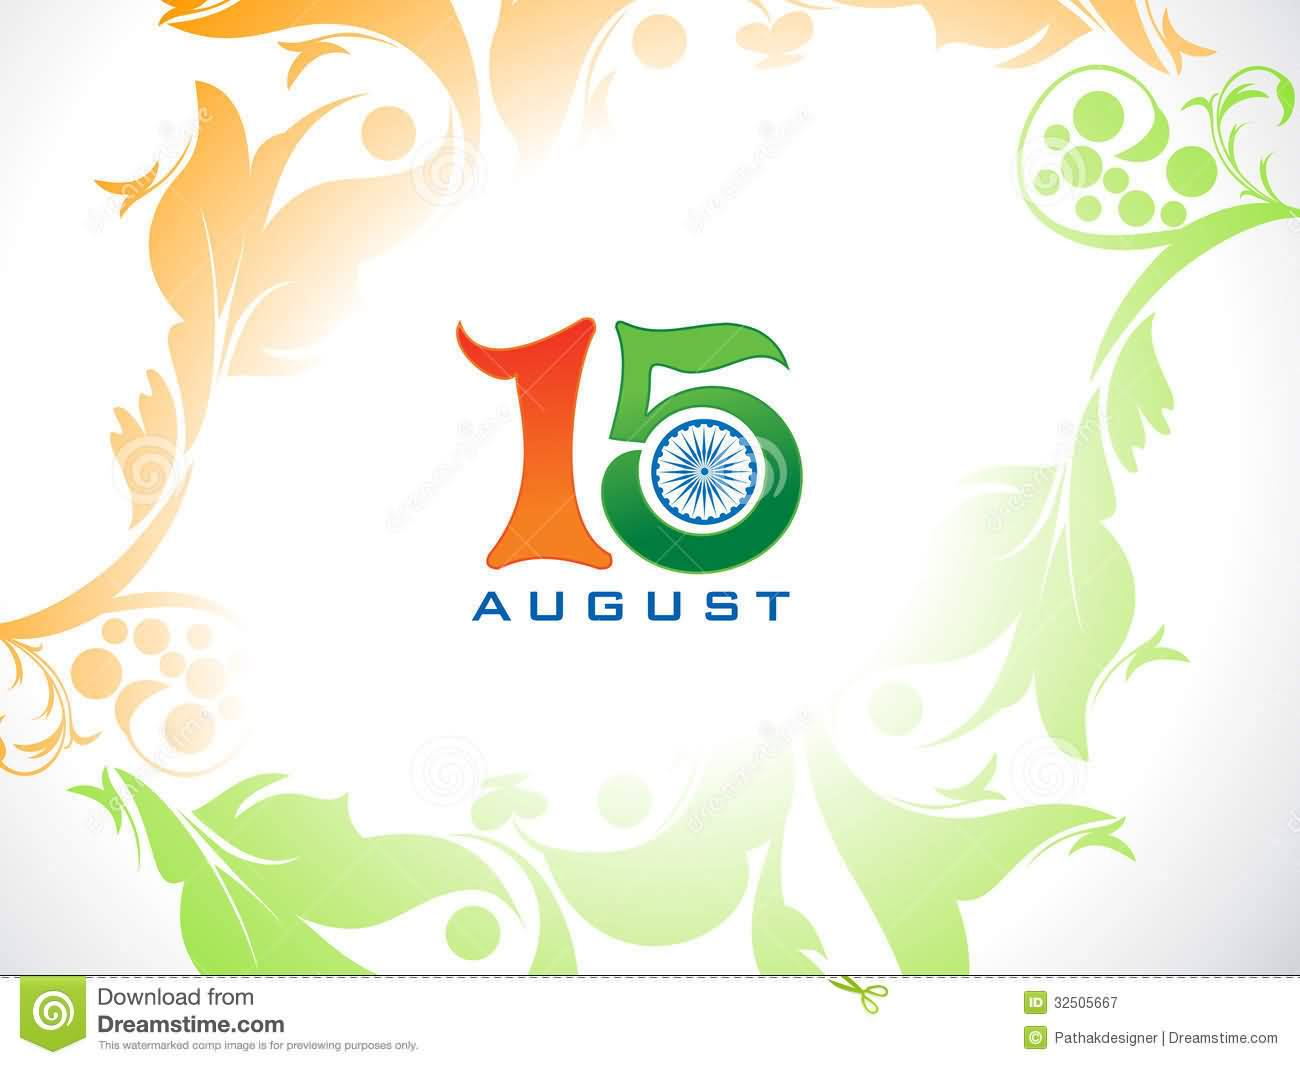 15 august india independence day wallpaper